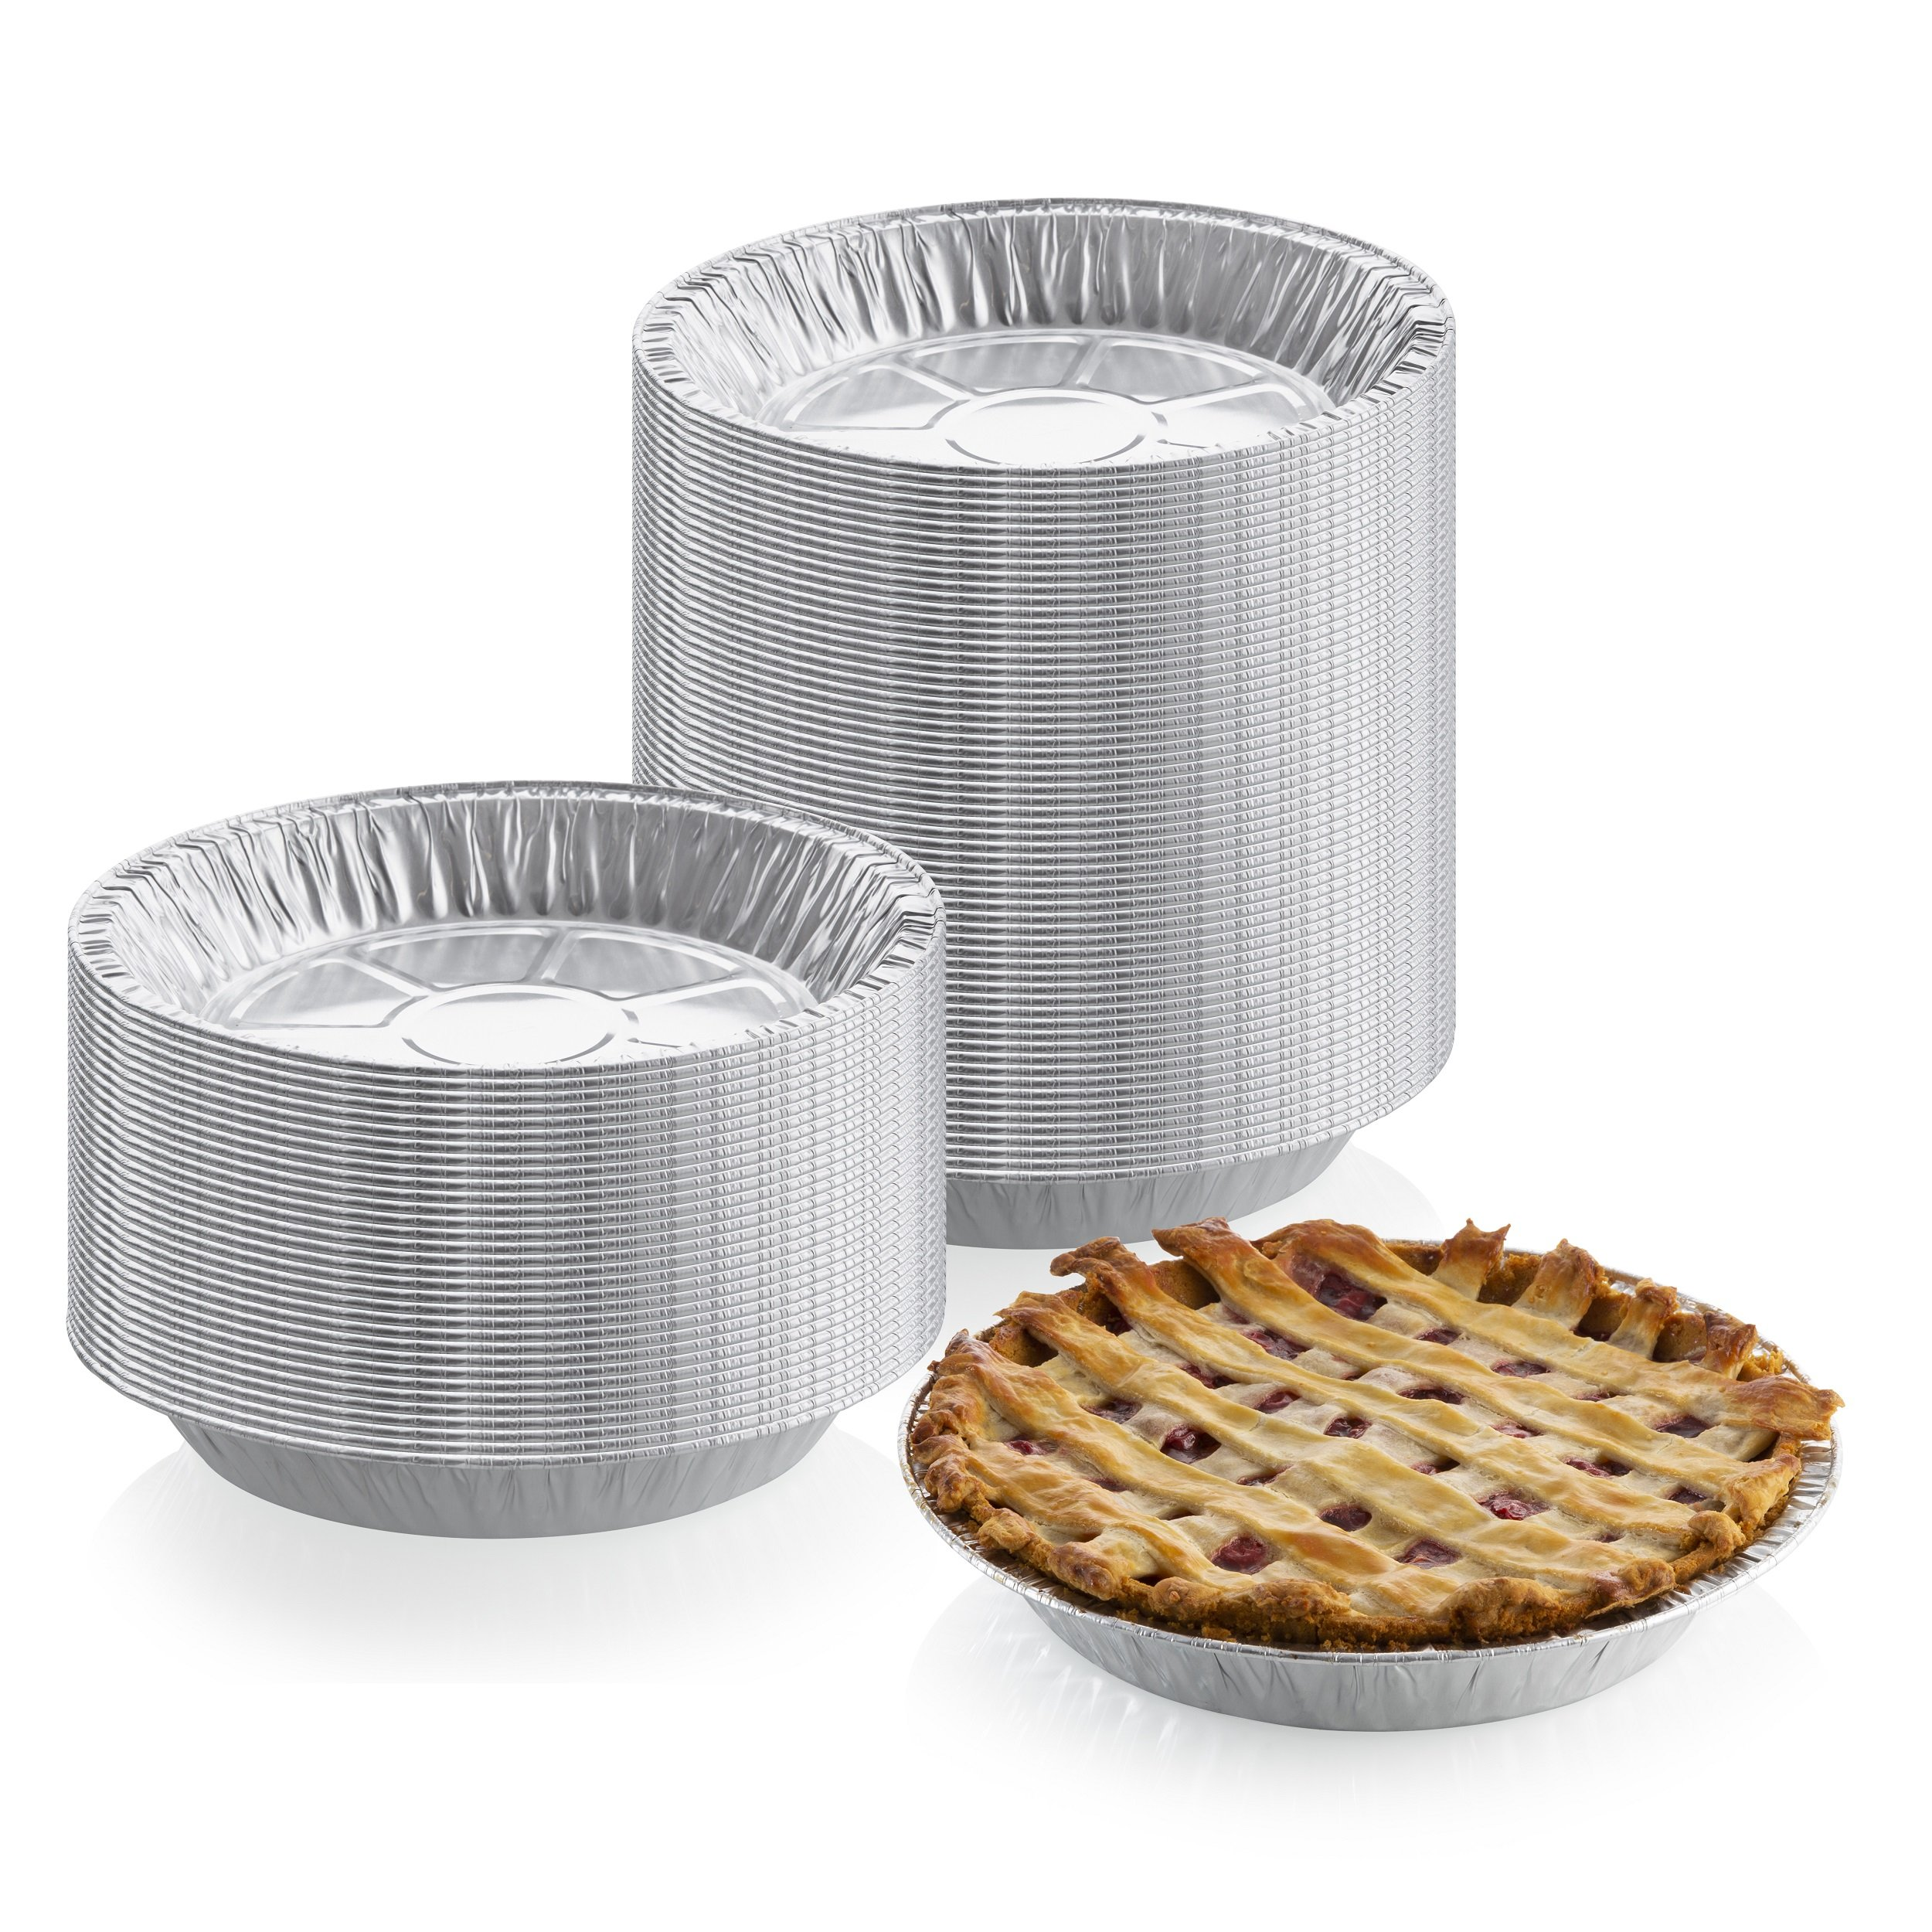 9'' x 1'' Medium Depth Aluminum Silver Foil Pie Pan (Pack of 50) – Disposable Round Tin Plates for Pies, Tart Quiche, Cheese Cake and Deserts, Perfect for Pie Fundraisers